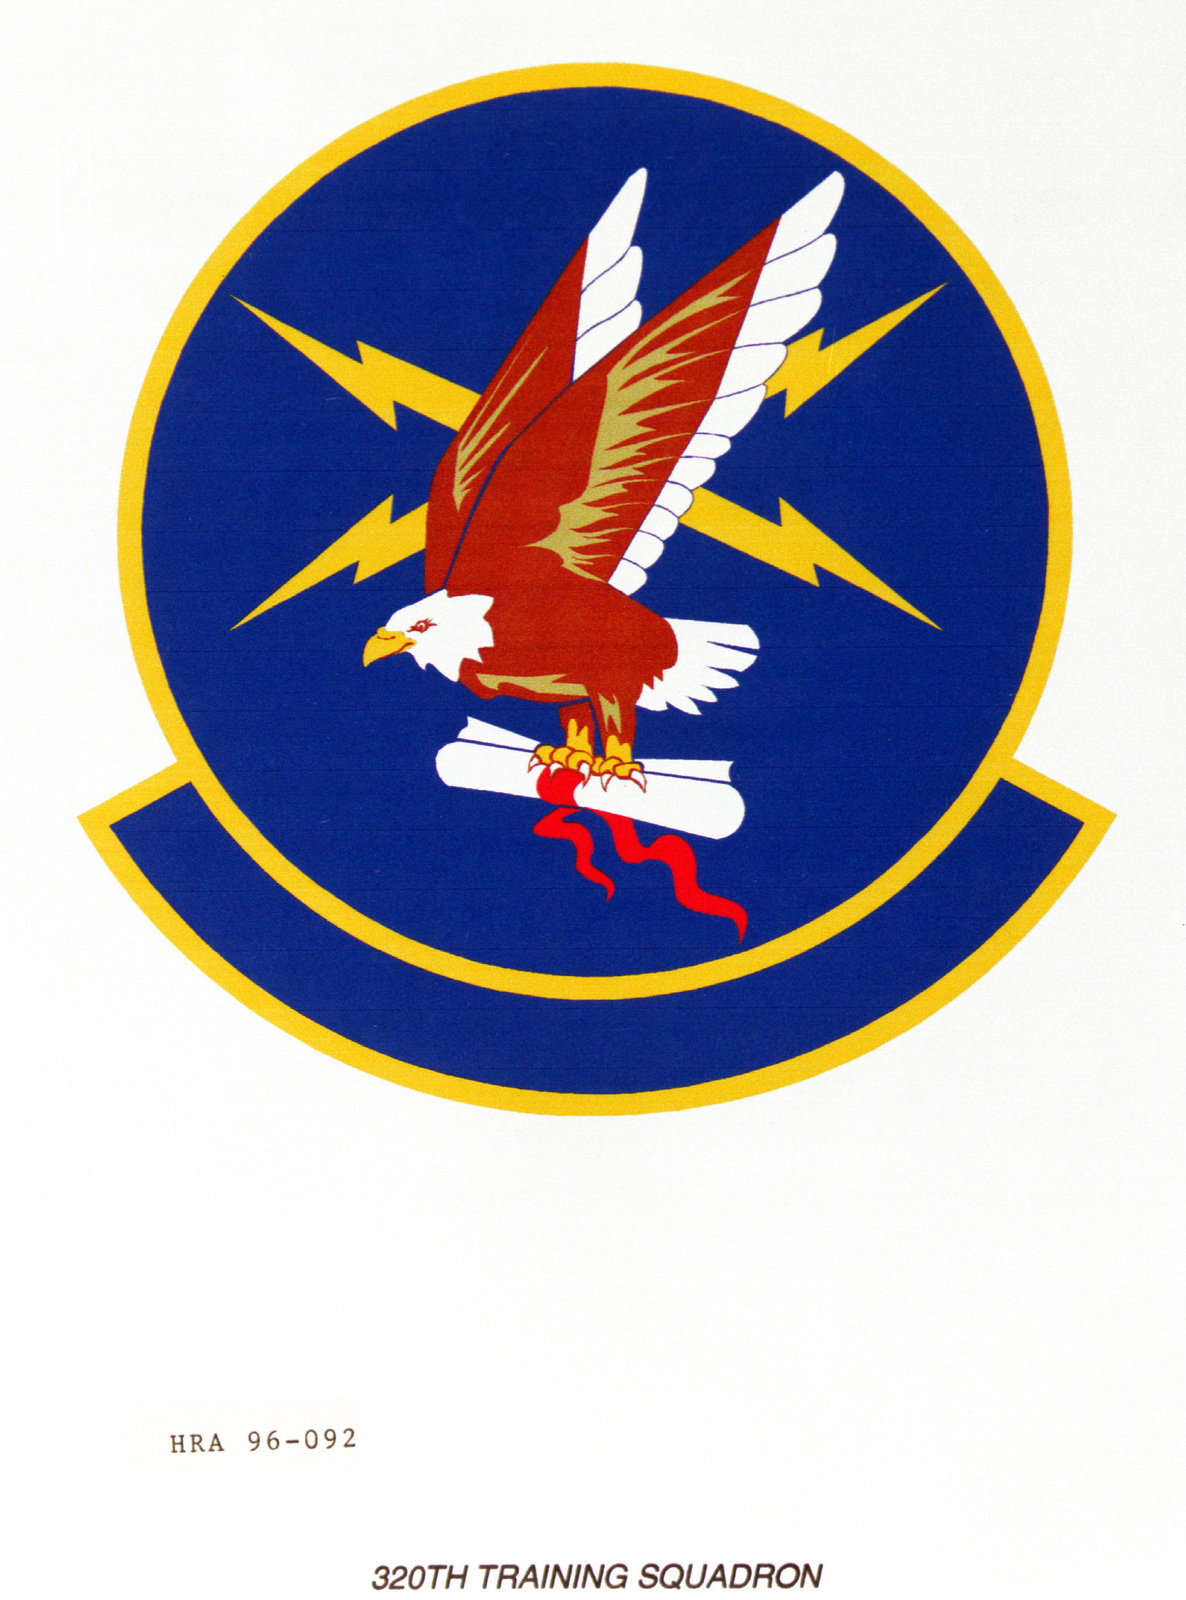 Air Force Organizational Emblem. 320th Training Squadron Exact Date Shot Unknown